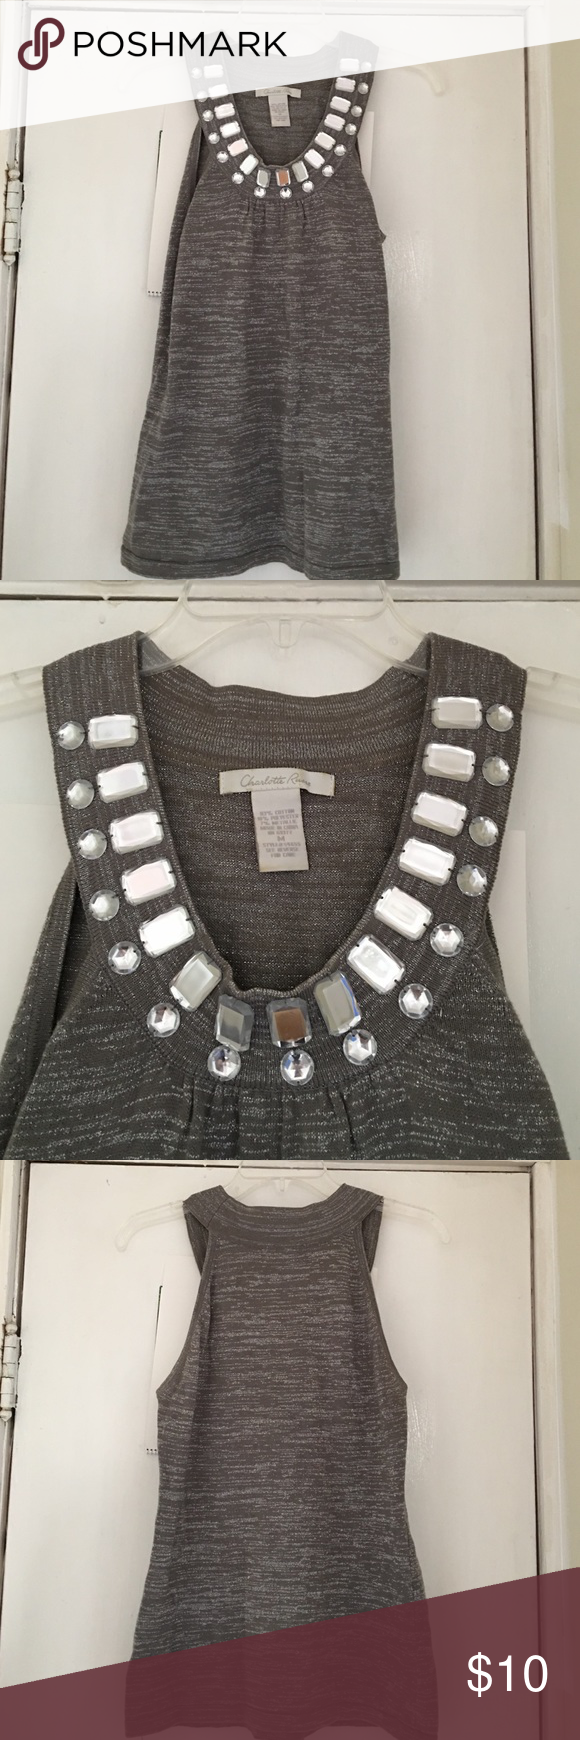 Silver Bedazzled Tank Top Beautiful tank top, light sweater material. Grey with silver sparkles throughout fabric. Jewels at the neckline help create a beautiful silhouette. Great condition, comes from a smoke-free, pet-free home! Charlotte Russe Tops Tank Tops